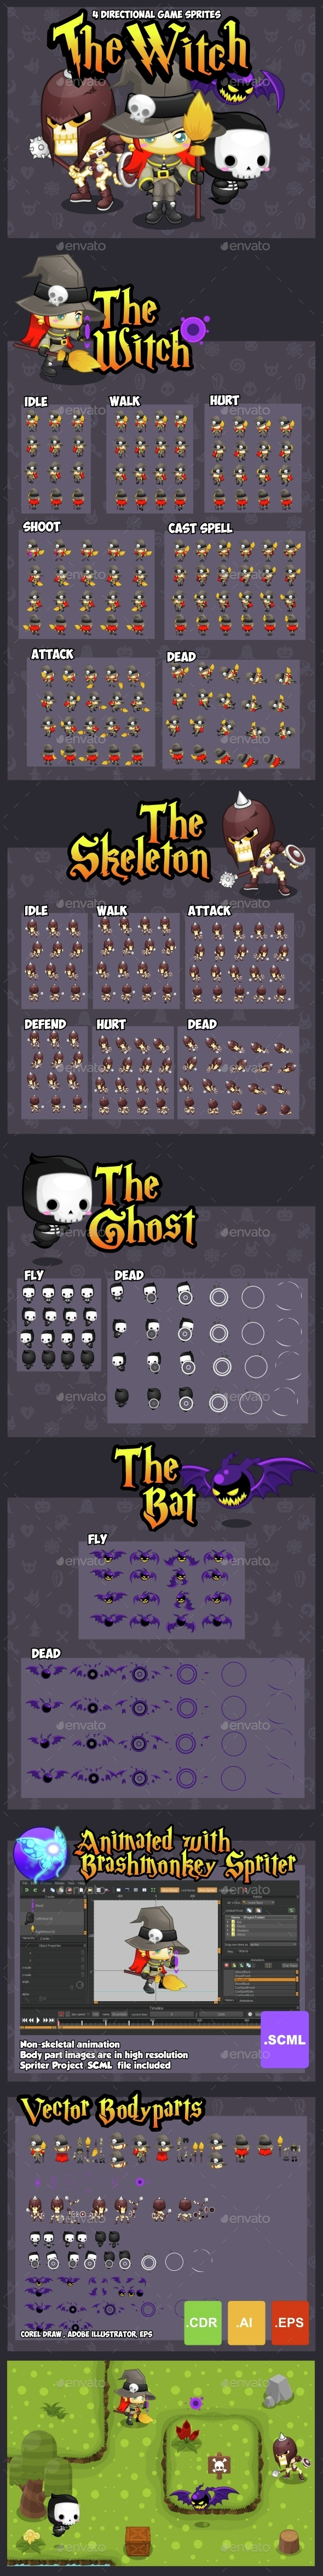 The Witch - Game Sprites - Sprites Game Assets